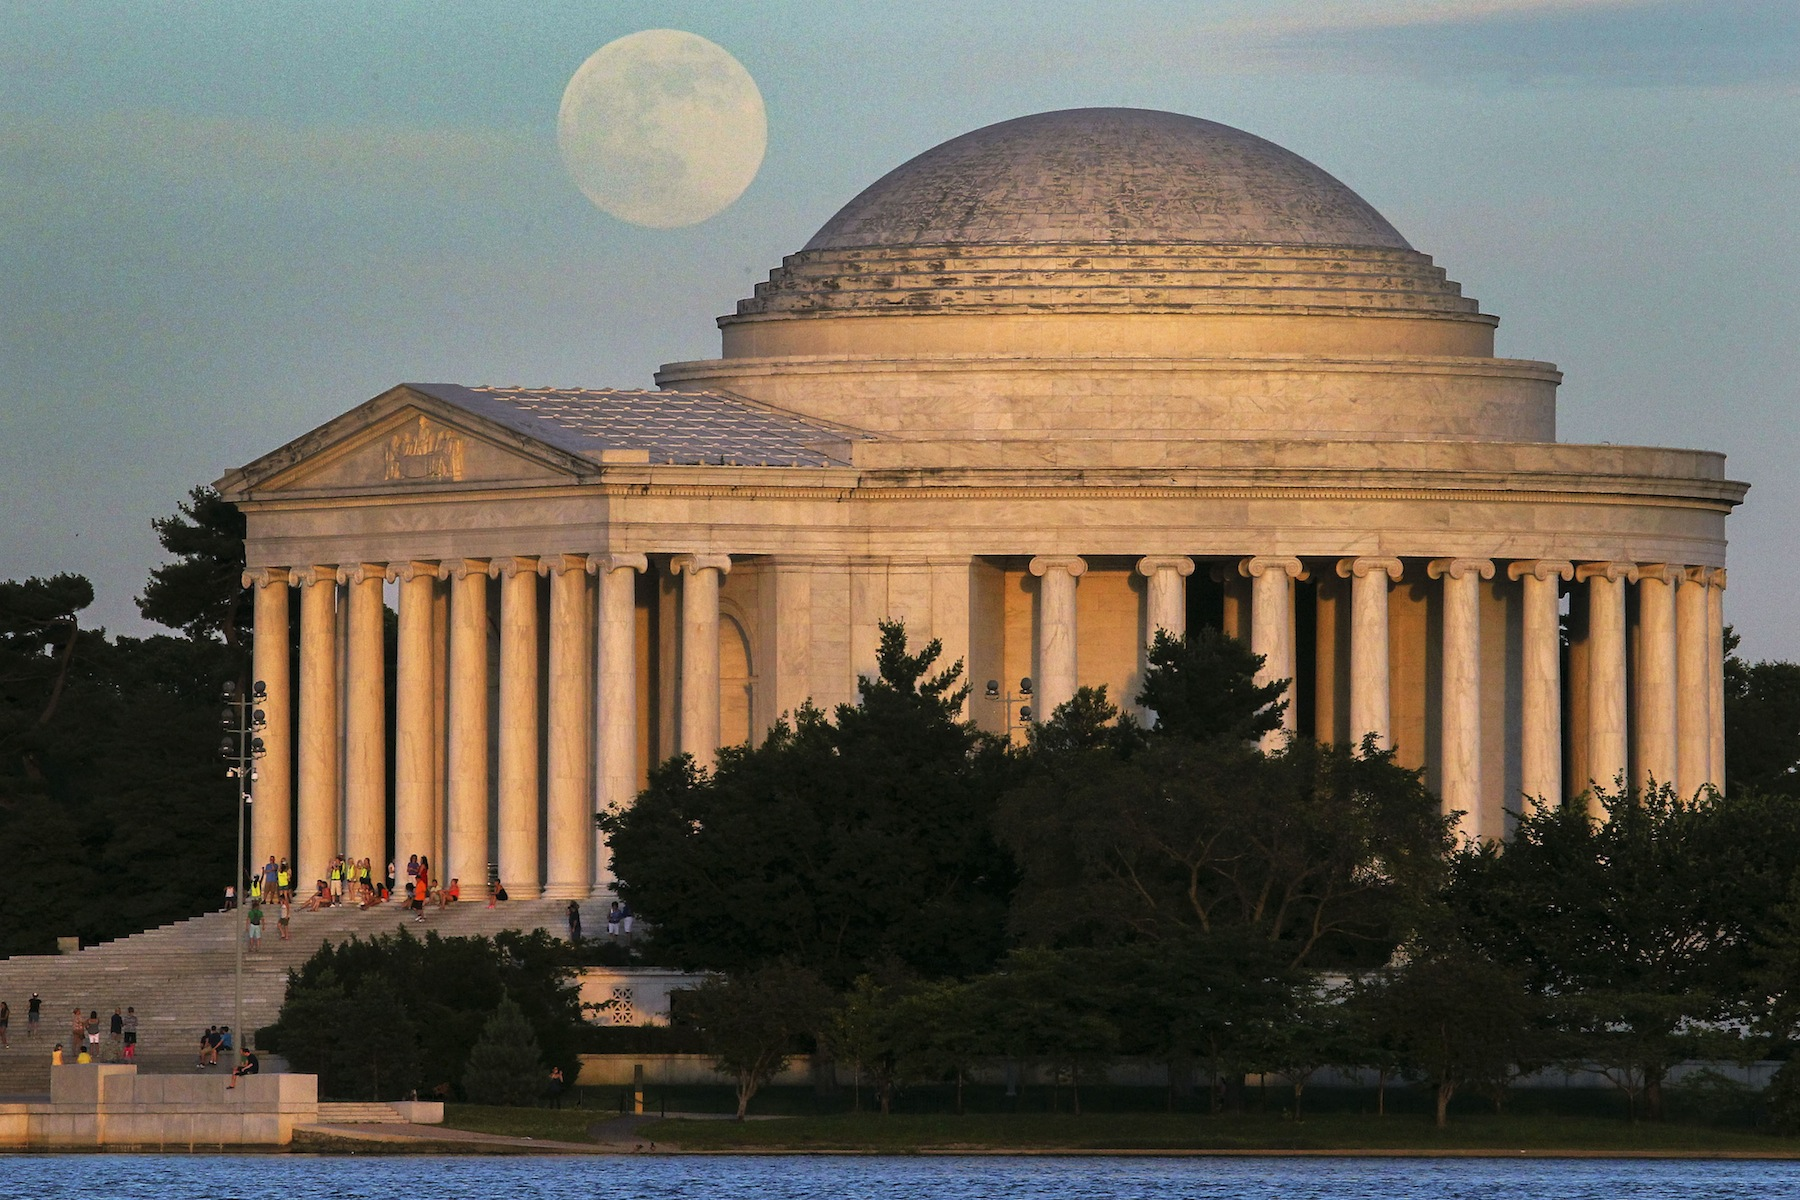 """A full moon rises behind the Jefferson Memorial in Washington Saturday, June 22, 2013. The larger than normal moon called the """"Supermoon"""" happens only once this year as the moon on its elliptical orbit is at its closest point to earth. (AP Photo/J. David Ake)"""